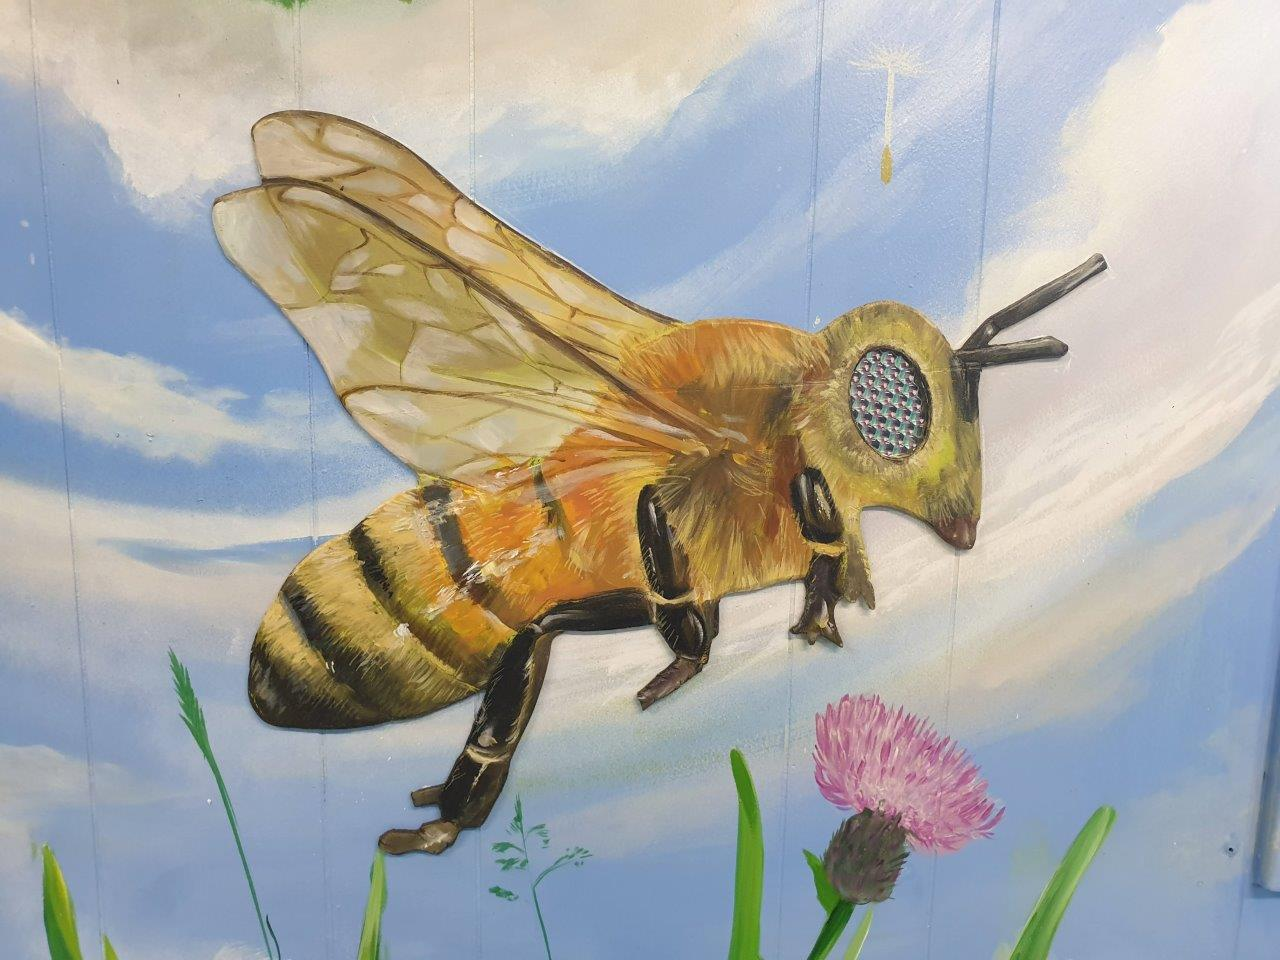 Image of a large wall-painted bee incl a Luximprint flys eye lens integrated